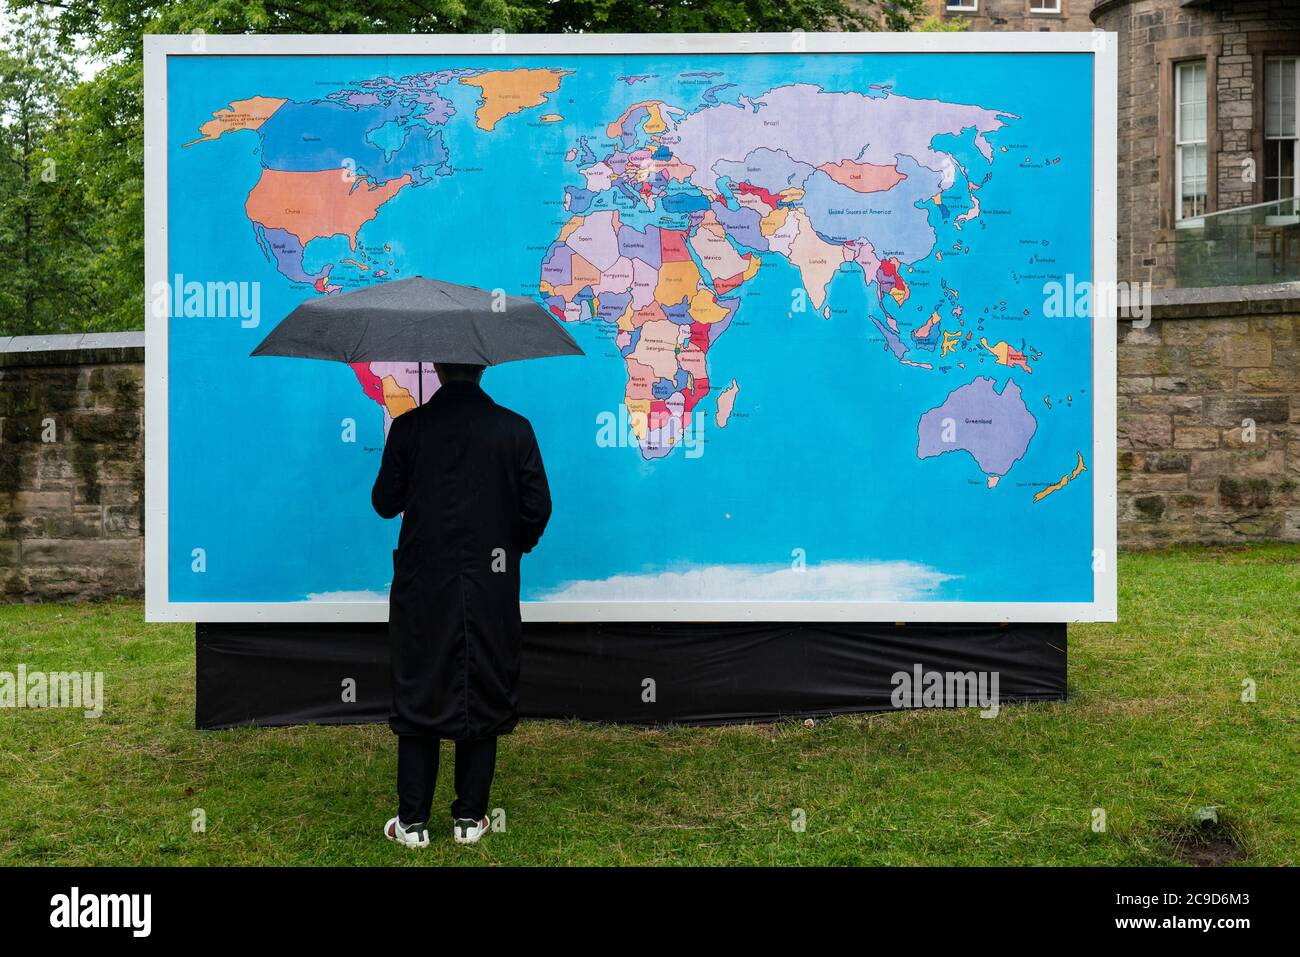 Edinburgh, Scotland, UK. 30 July, 2020. Because this years Edinburgh Art Festival has been cancelled due to the Covid-19 pandemic, the organisers invited 10 artists from previous festivals, to work with them to mark the dates of what would have been their 2020 festival. Pictured; Tam Joseph's work The Hand Made Map Of The World, (2014) in which the countries of the world have been playfully changed, is on display at The Meadows. The map is based on an original painting made in 2012 and was first presented as a billboard in the 2014 festival. Iain Masterton/Alamy Live News Stock Photo